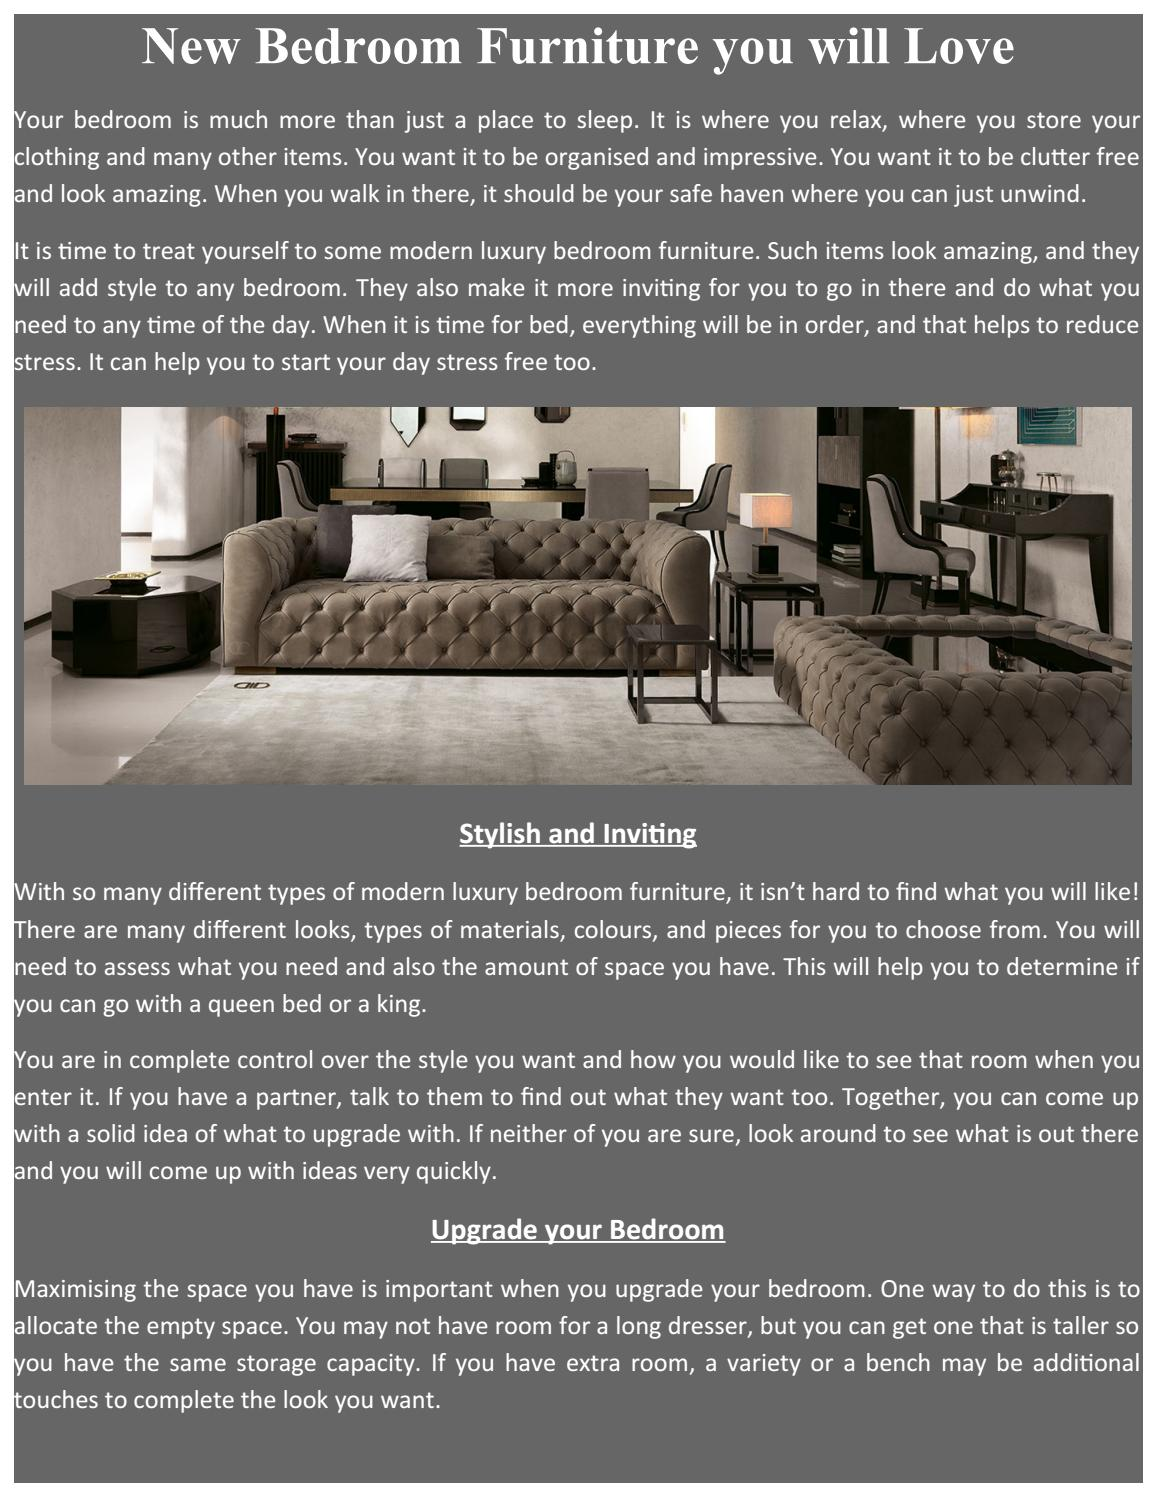 New Bedroom Furniture You Will Love By Tulipinterior1 Issuu